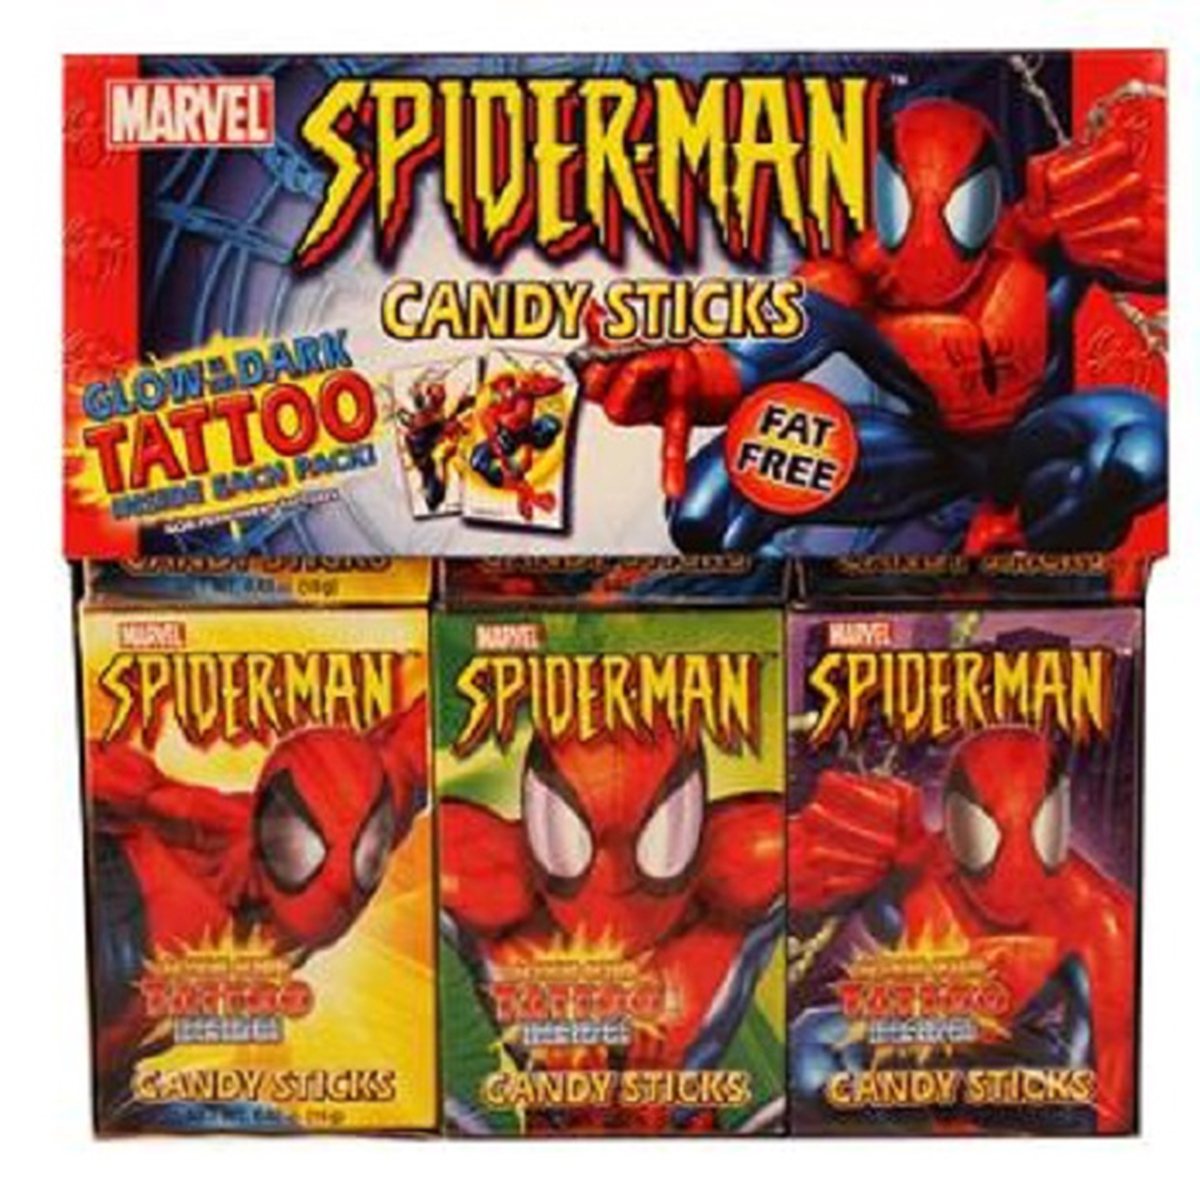 Product Of Marvel, Ultimate Spiderman Candy Stick, Count 30 - Sugar Candy / Grab Varieties & Flavors